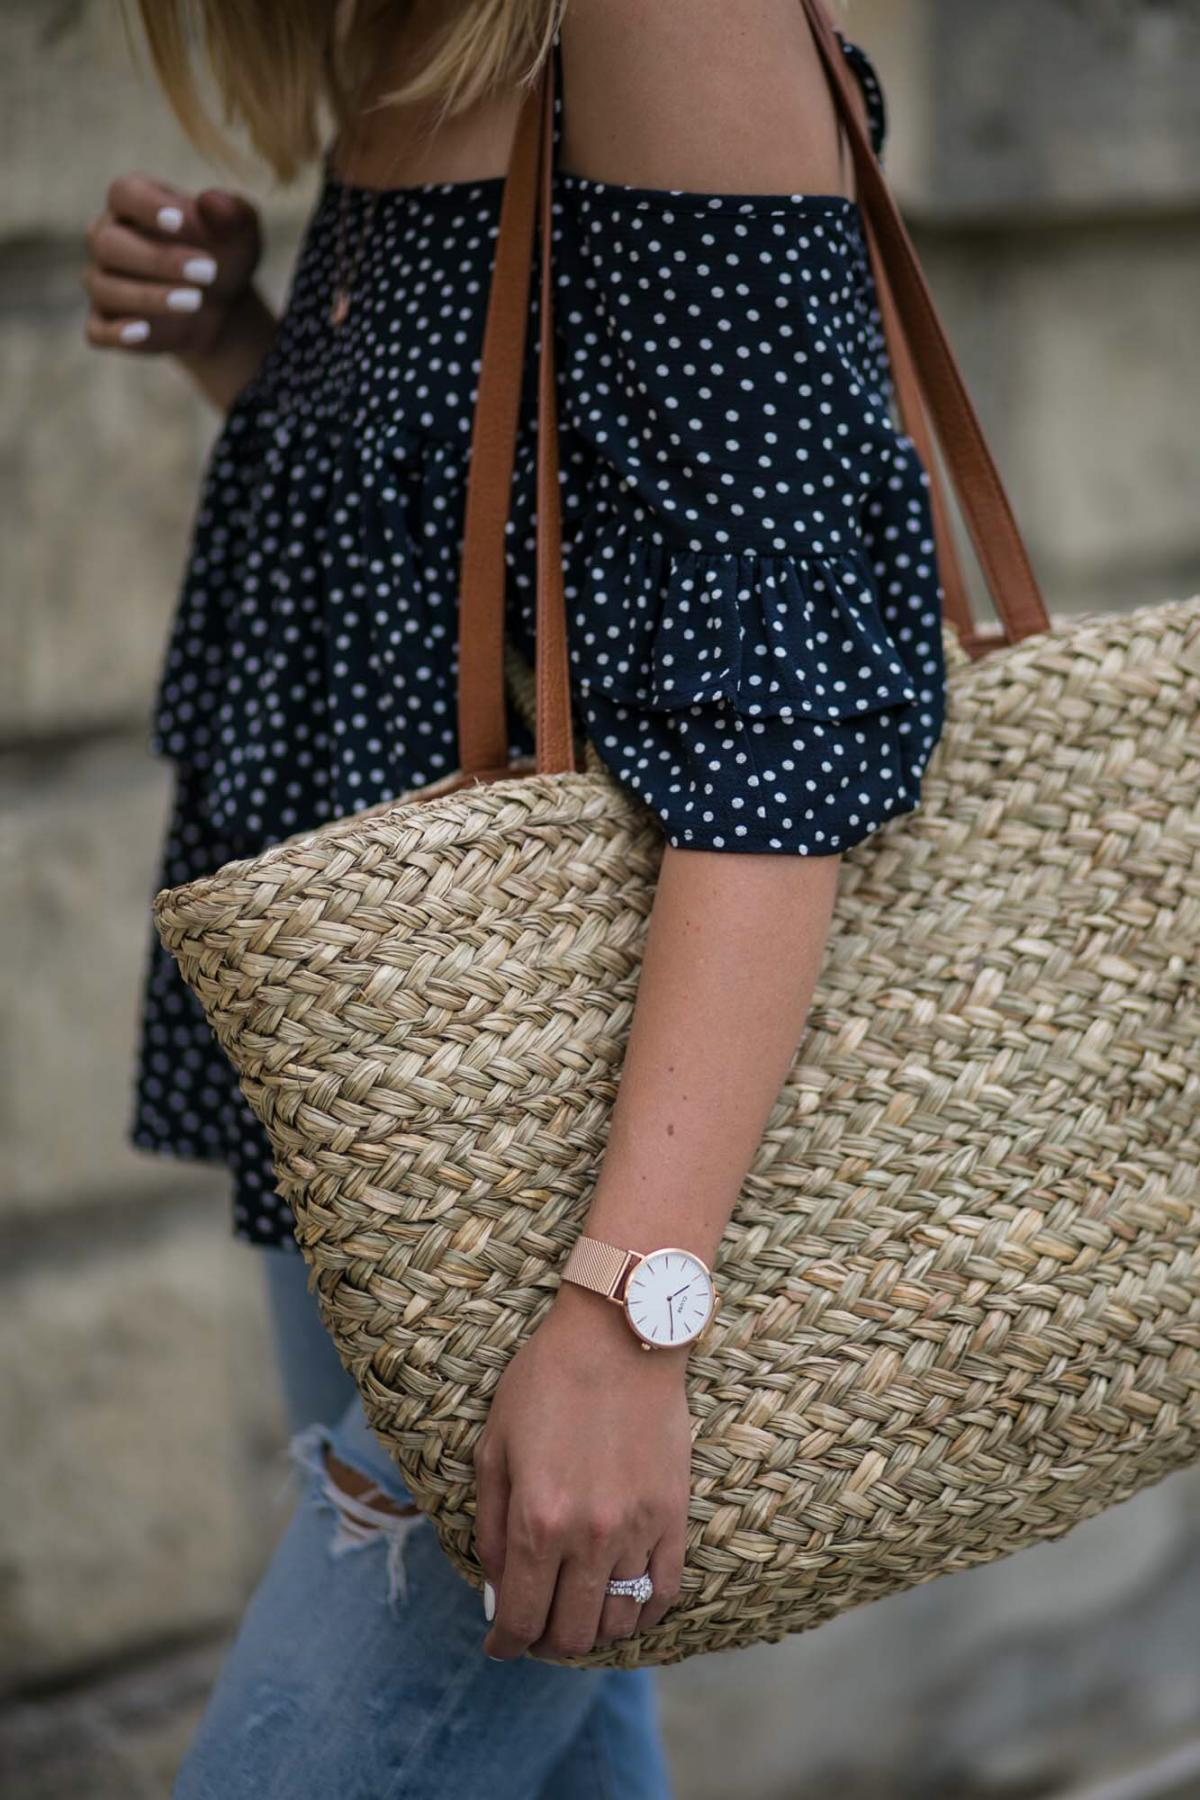 rose gold watch, straw woven wicker beach bag, navy polka dot top, cold shoulder top, summer outfit